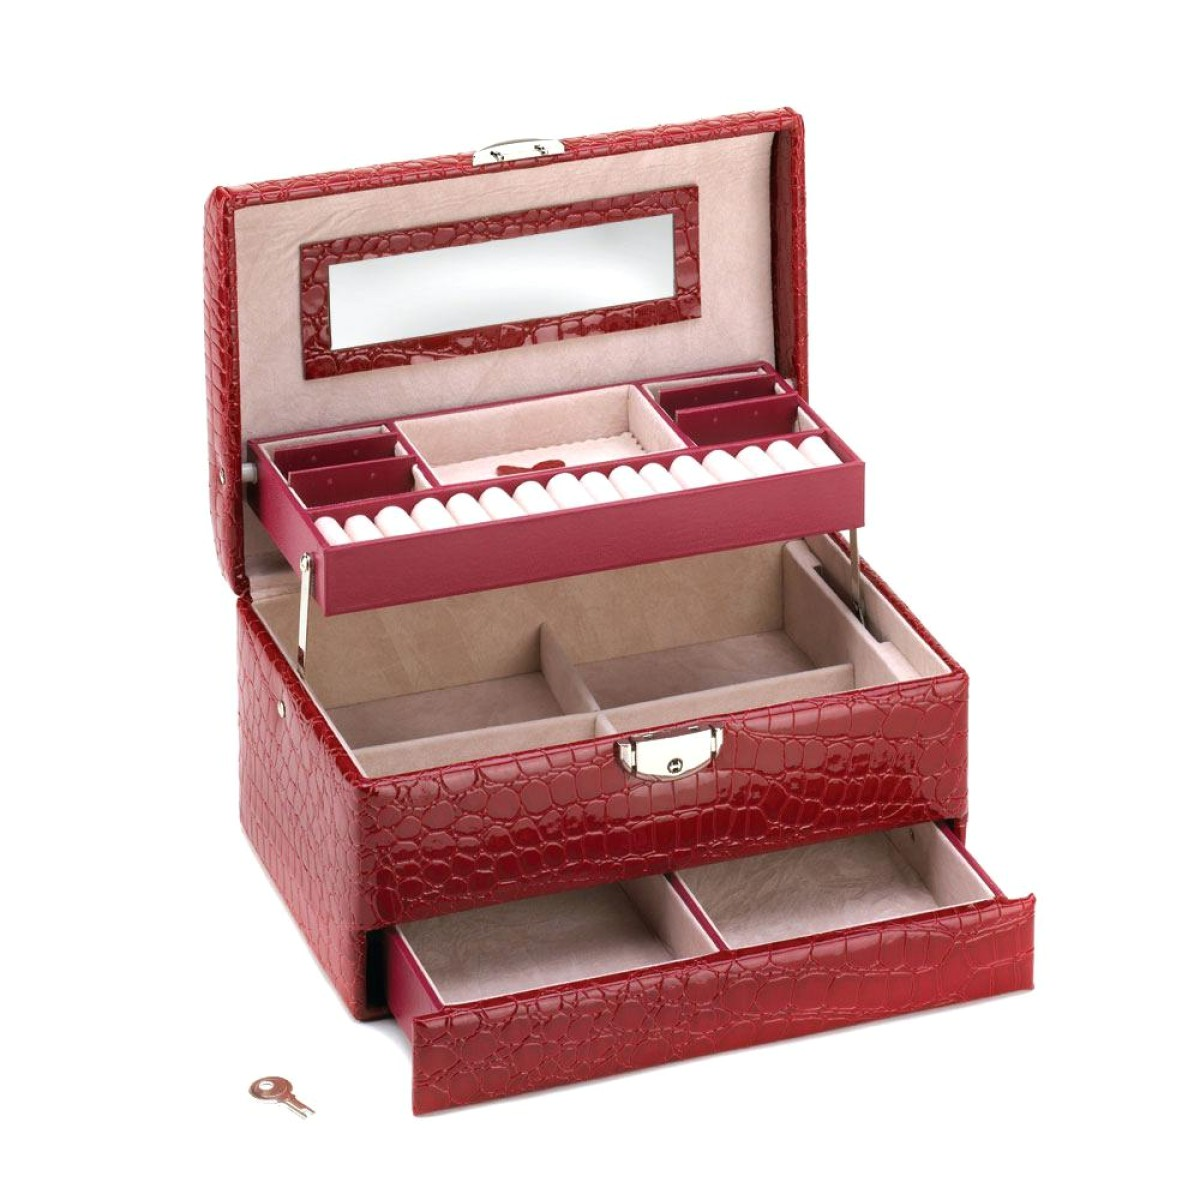 jewelry beautiful box hinges and latches